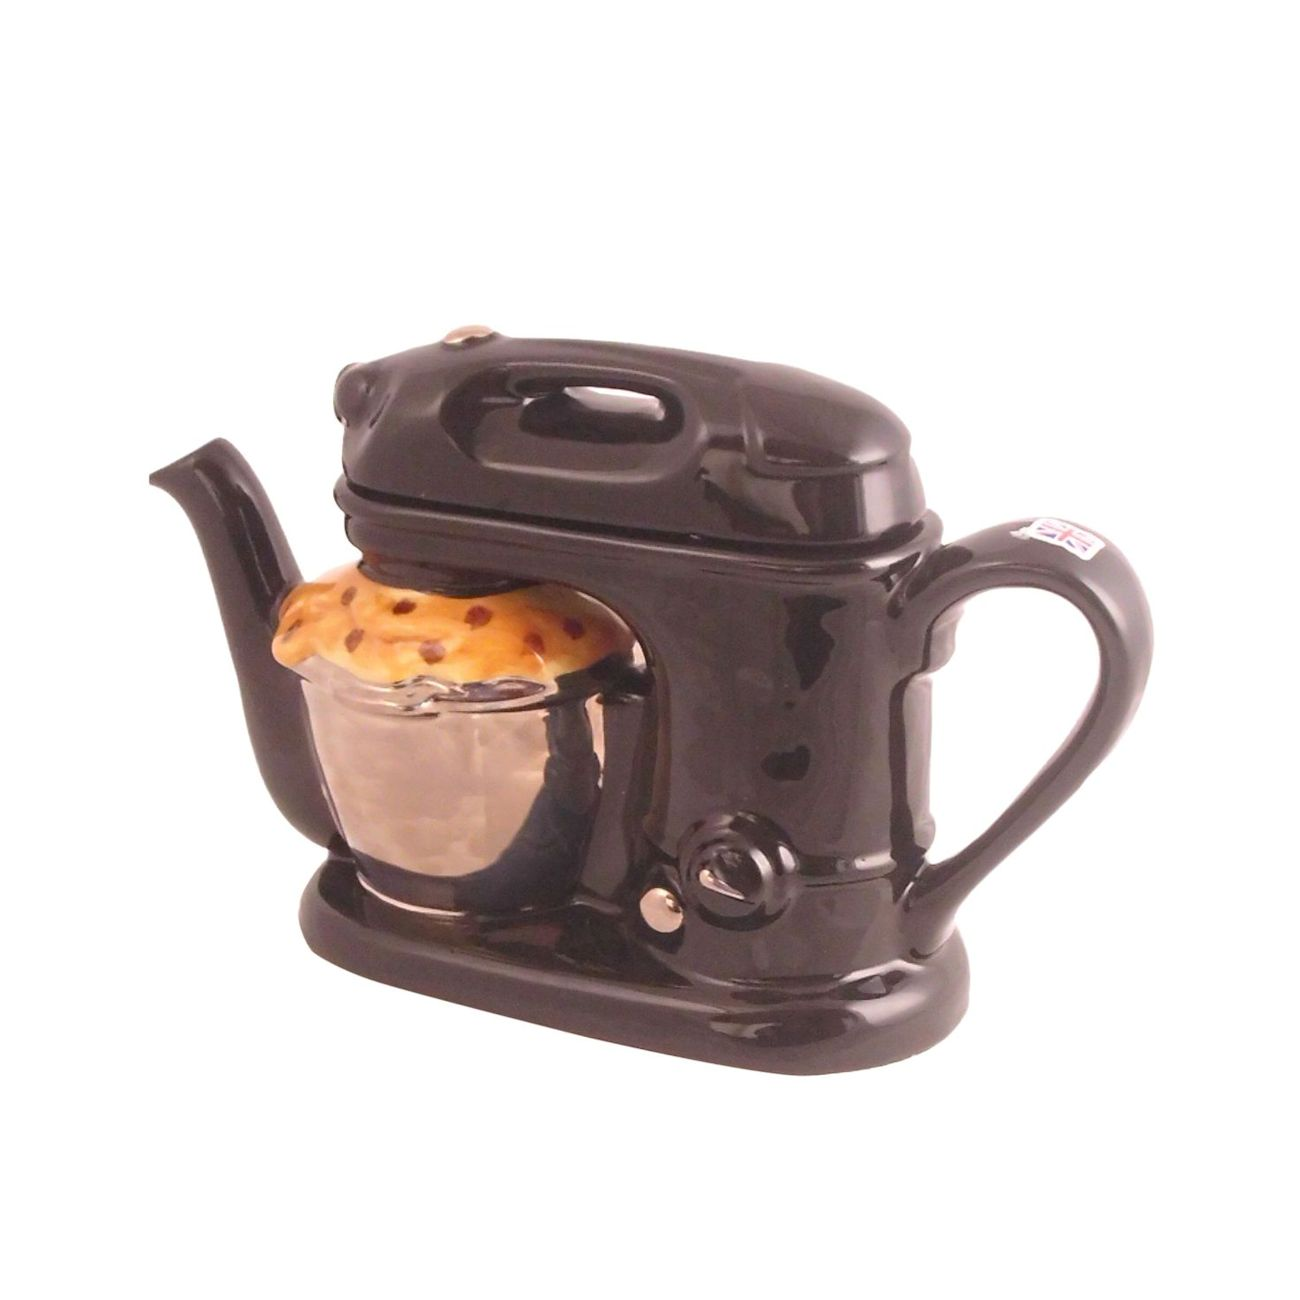 Food Mixer Collectable Novelty Teapot Carters Of Suffolk